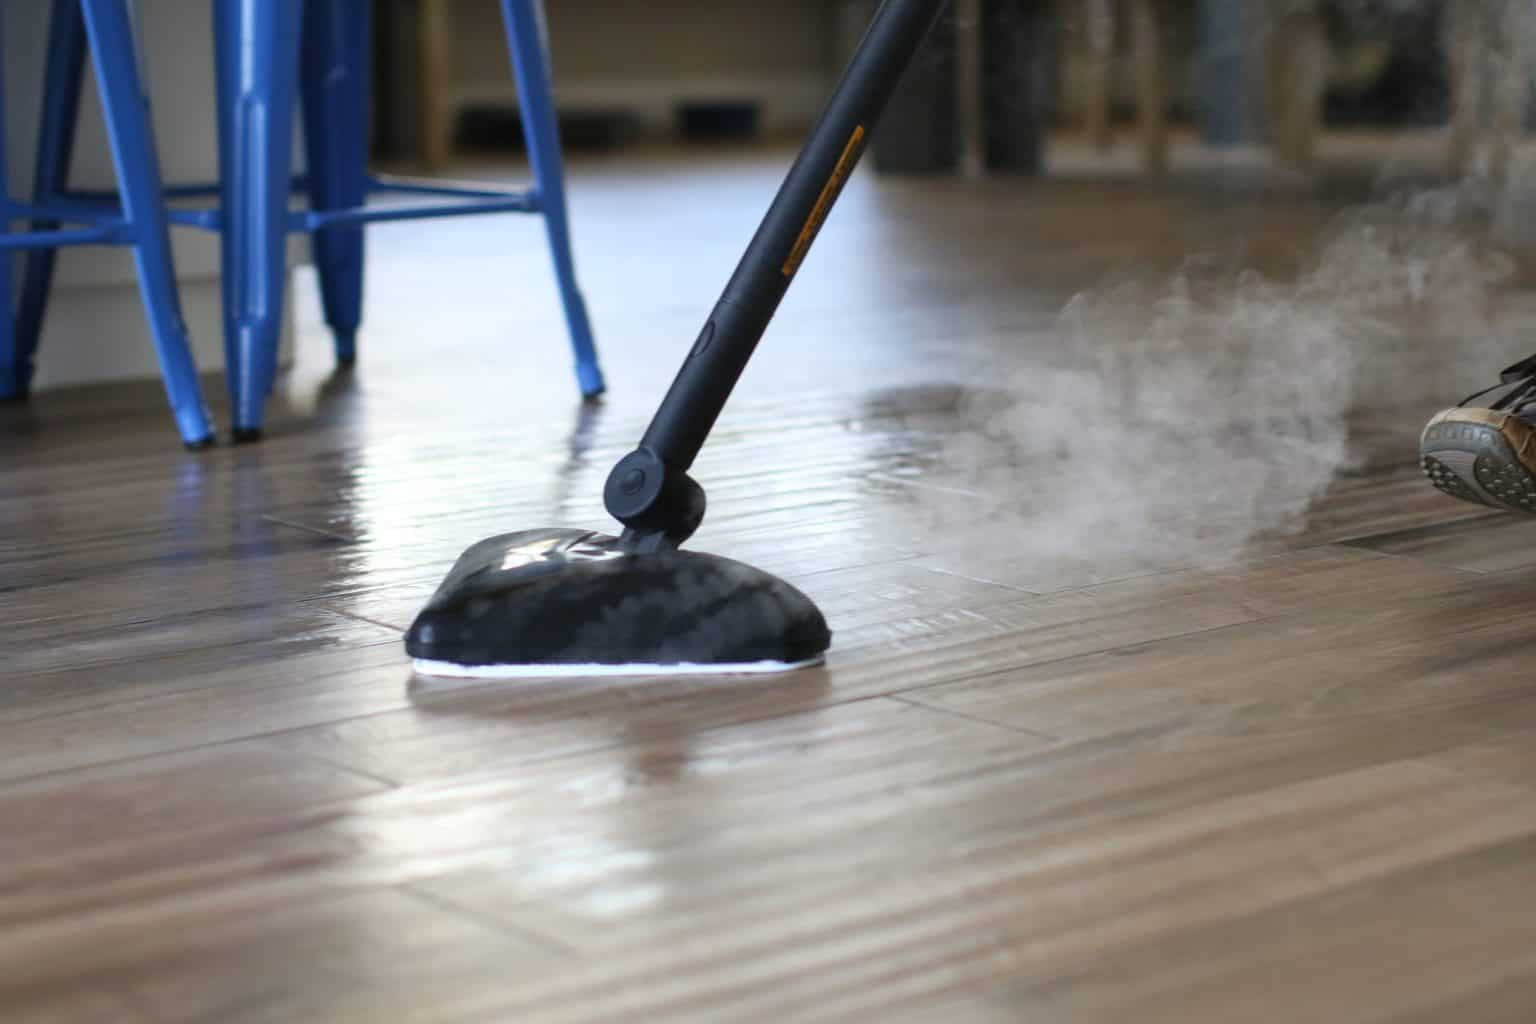 Steam mop being used to clean vinyl floors